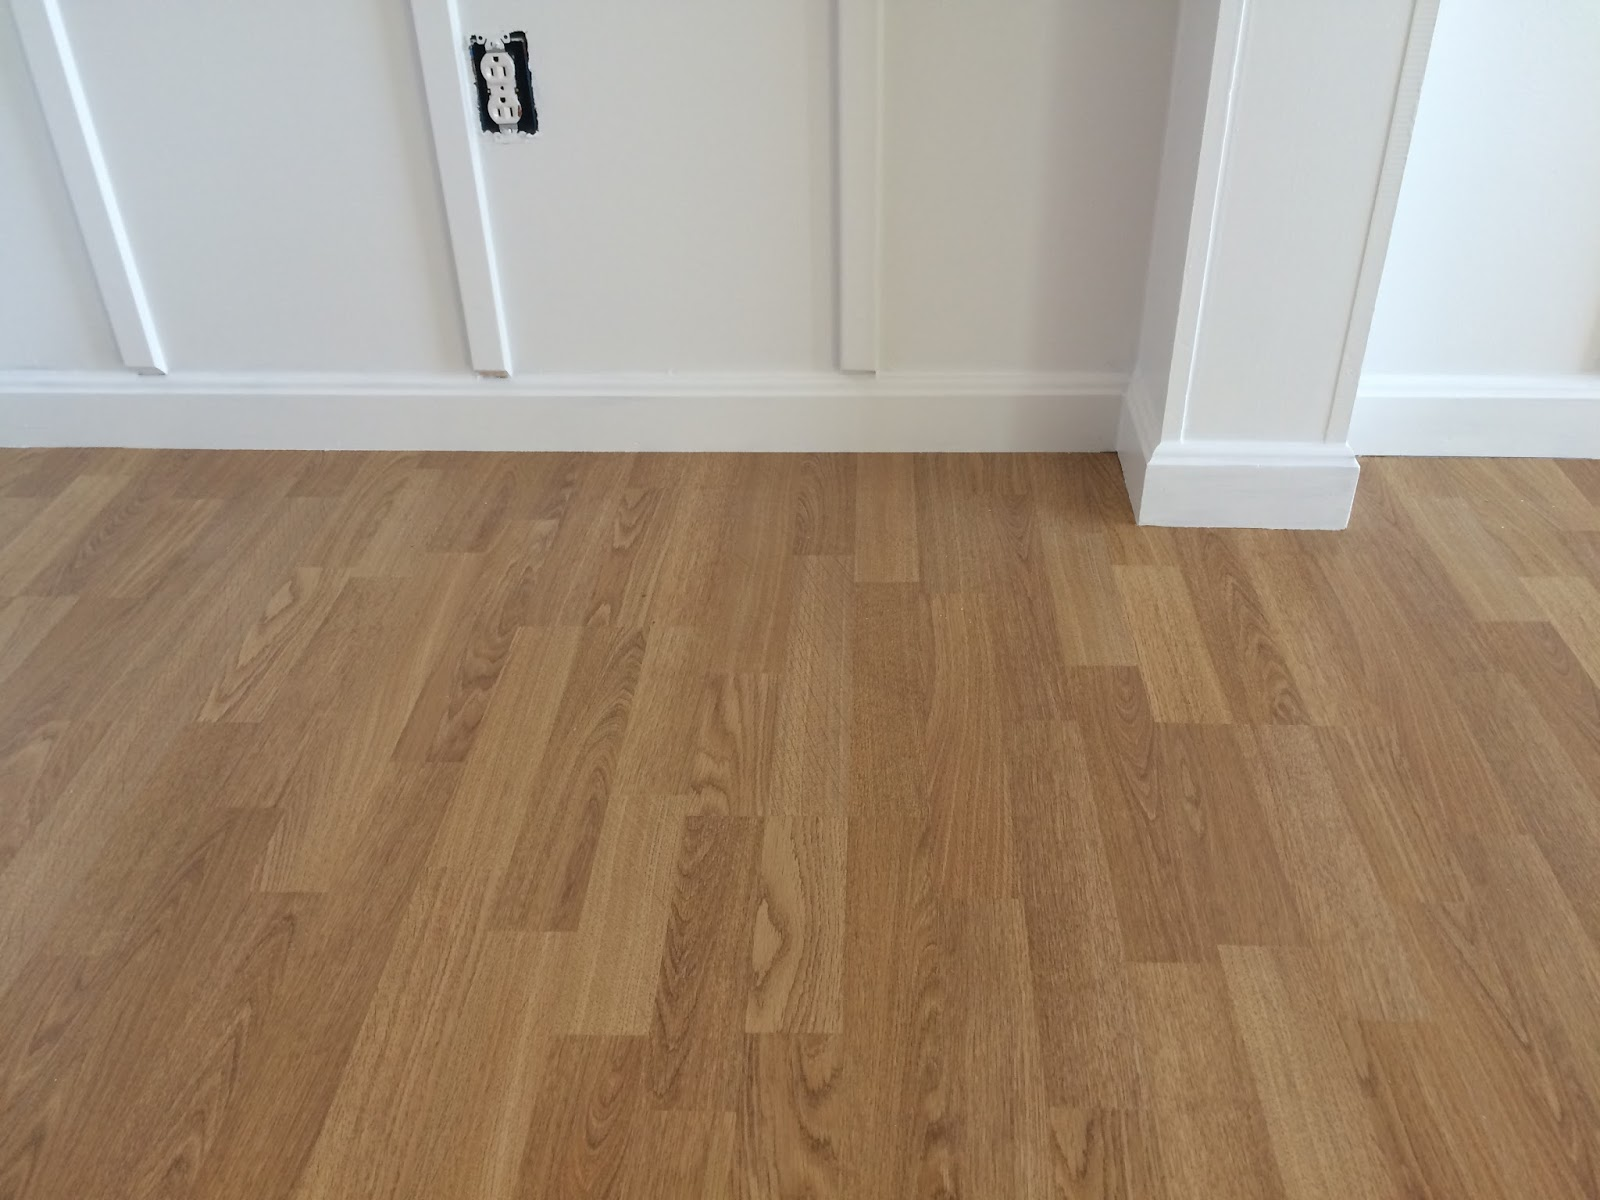 how to get residue off laminate floors